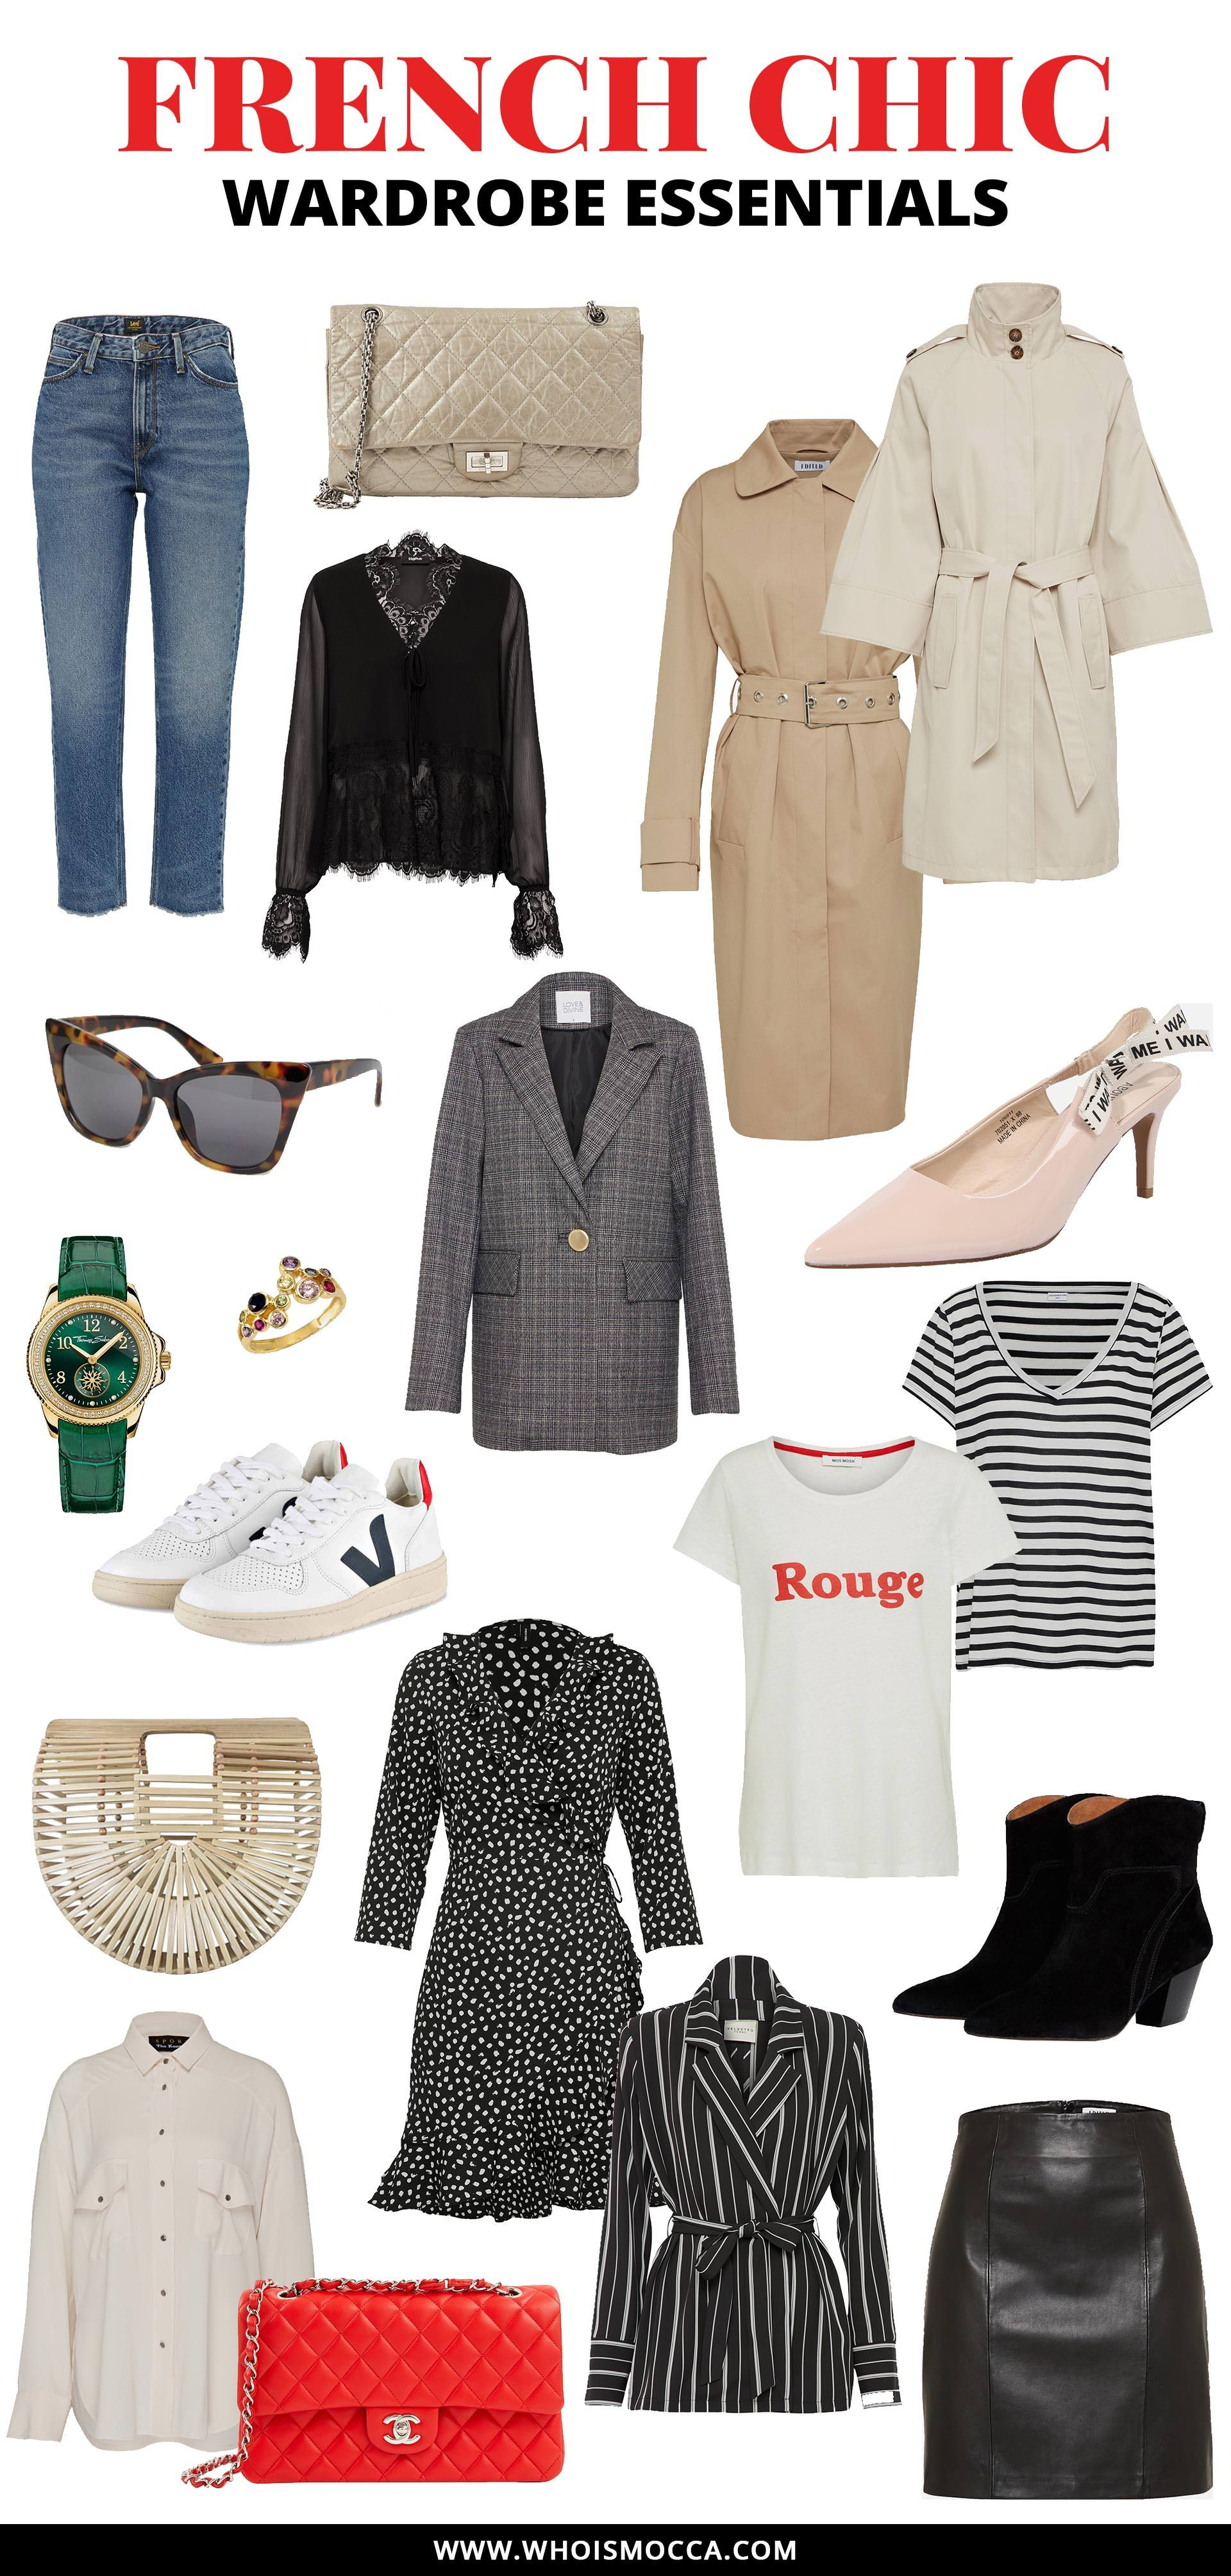 French Chic Wardrobe Essentials – die Must-haves für den Parisian Style!